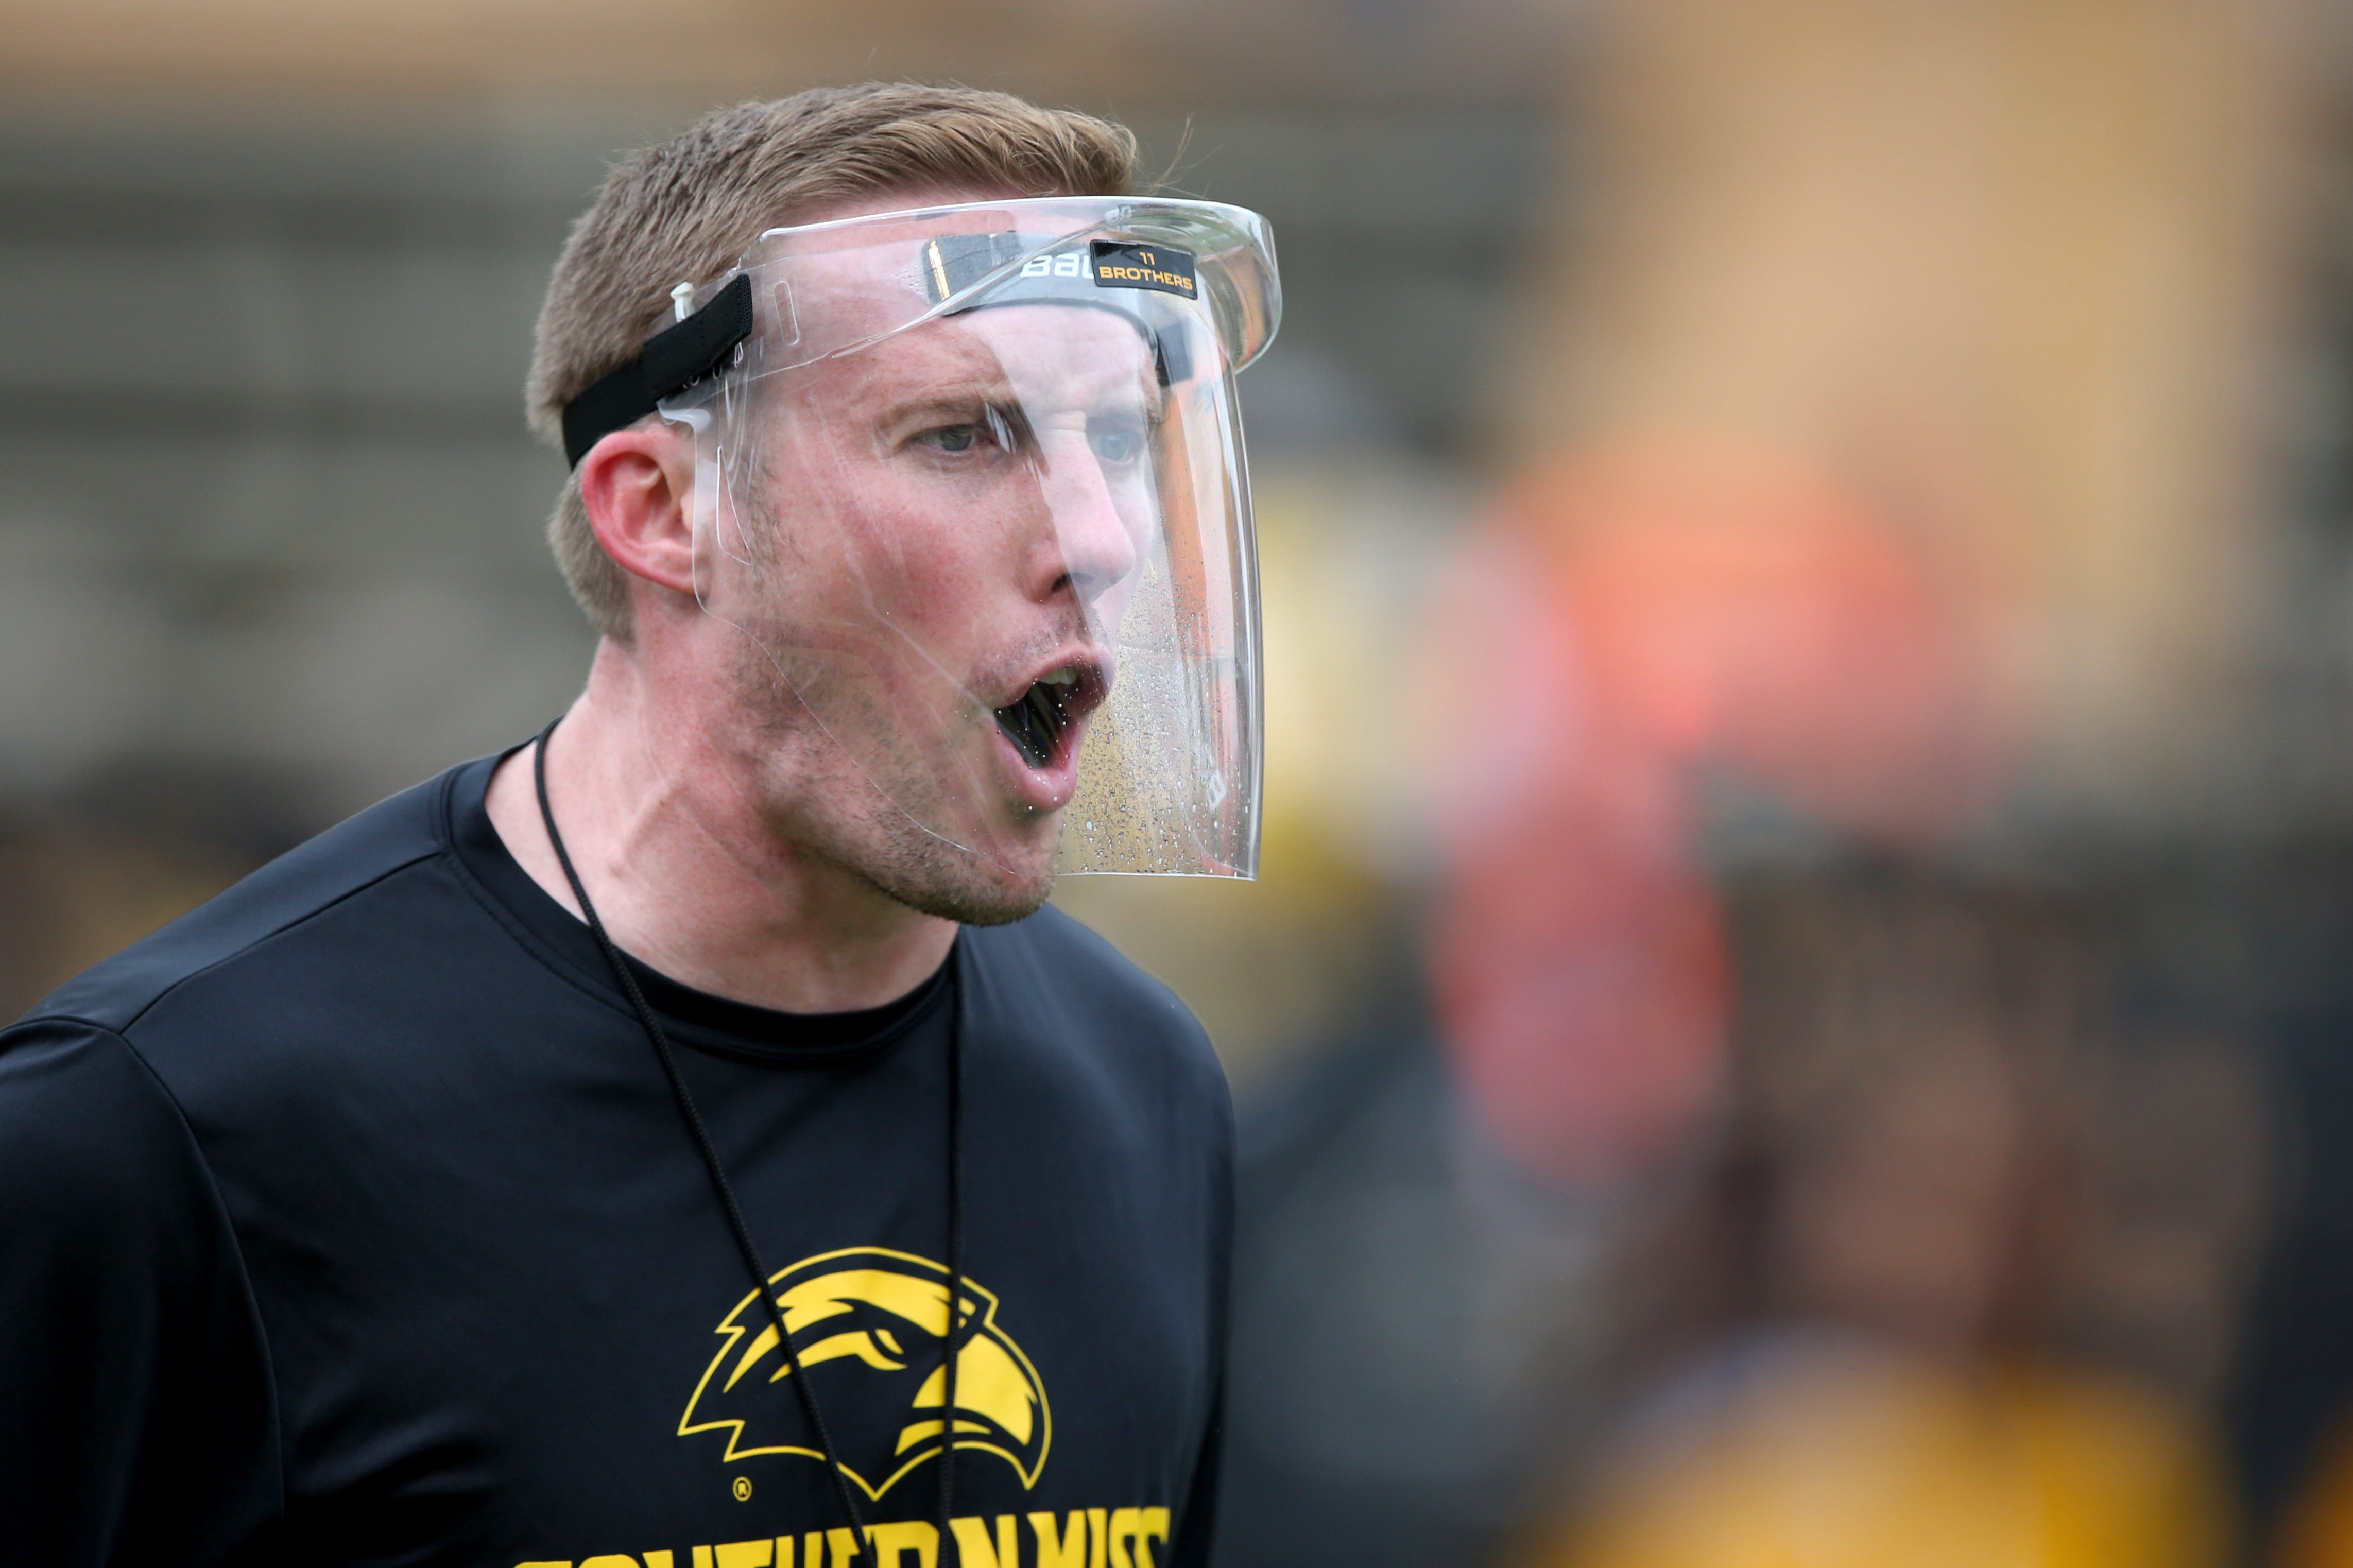 Scotty Walden, interim head coach at Southern Miss, tests positive for COVID-19